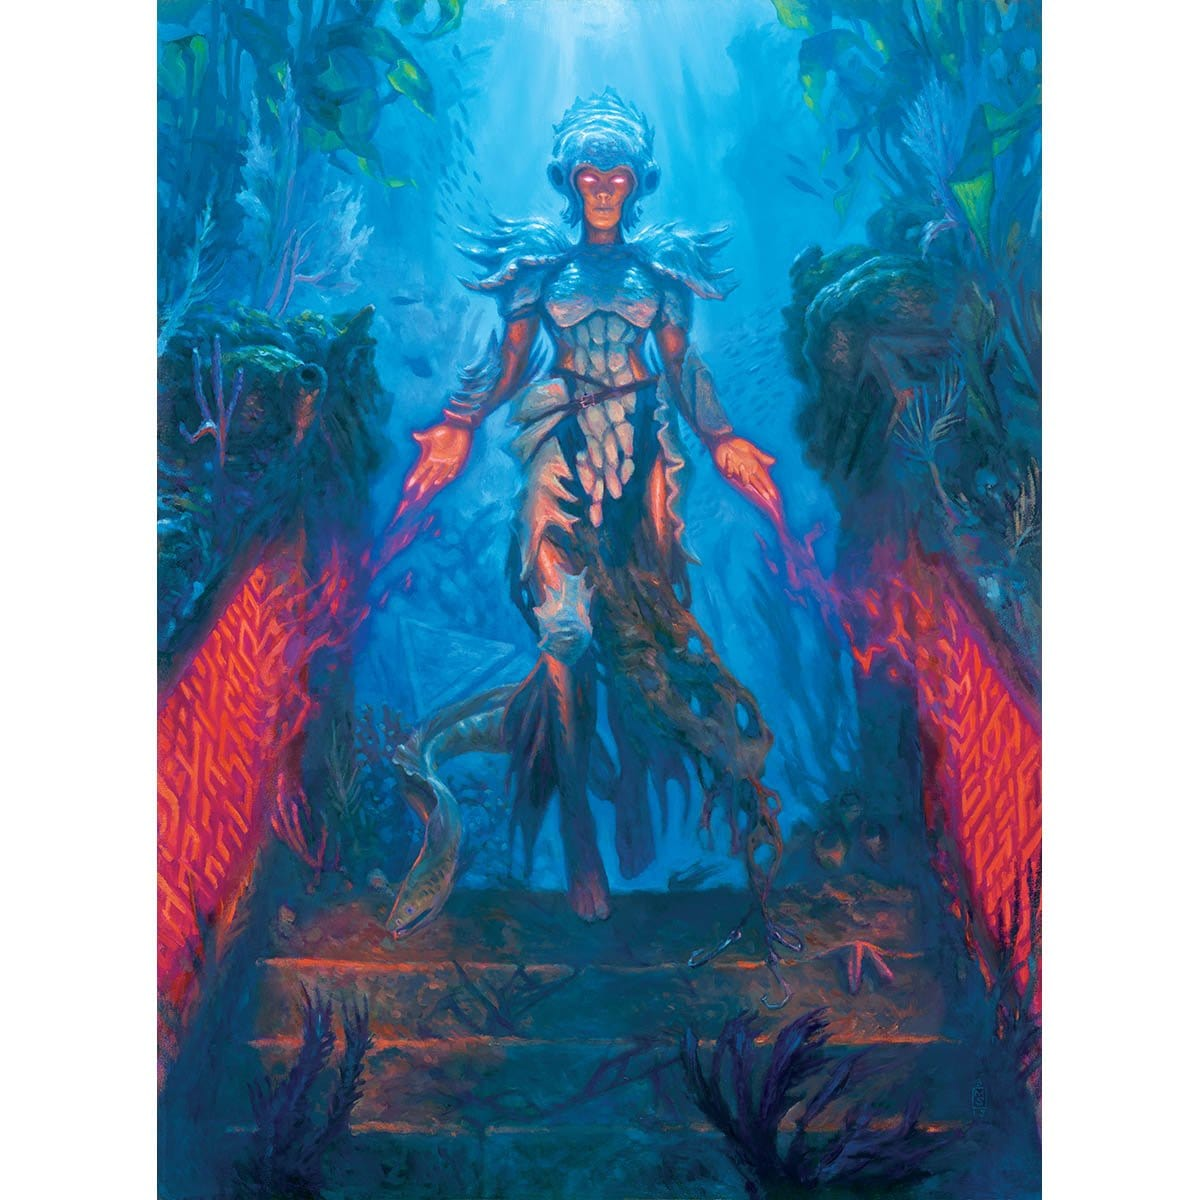 Jori En, Ruin Diver Print - Print - Original Magic Art - Accessories for Magic the Gathering and other card games